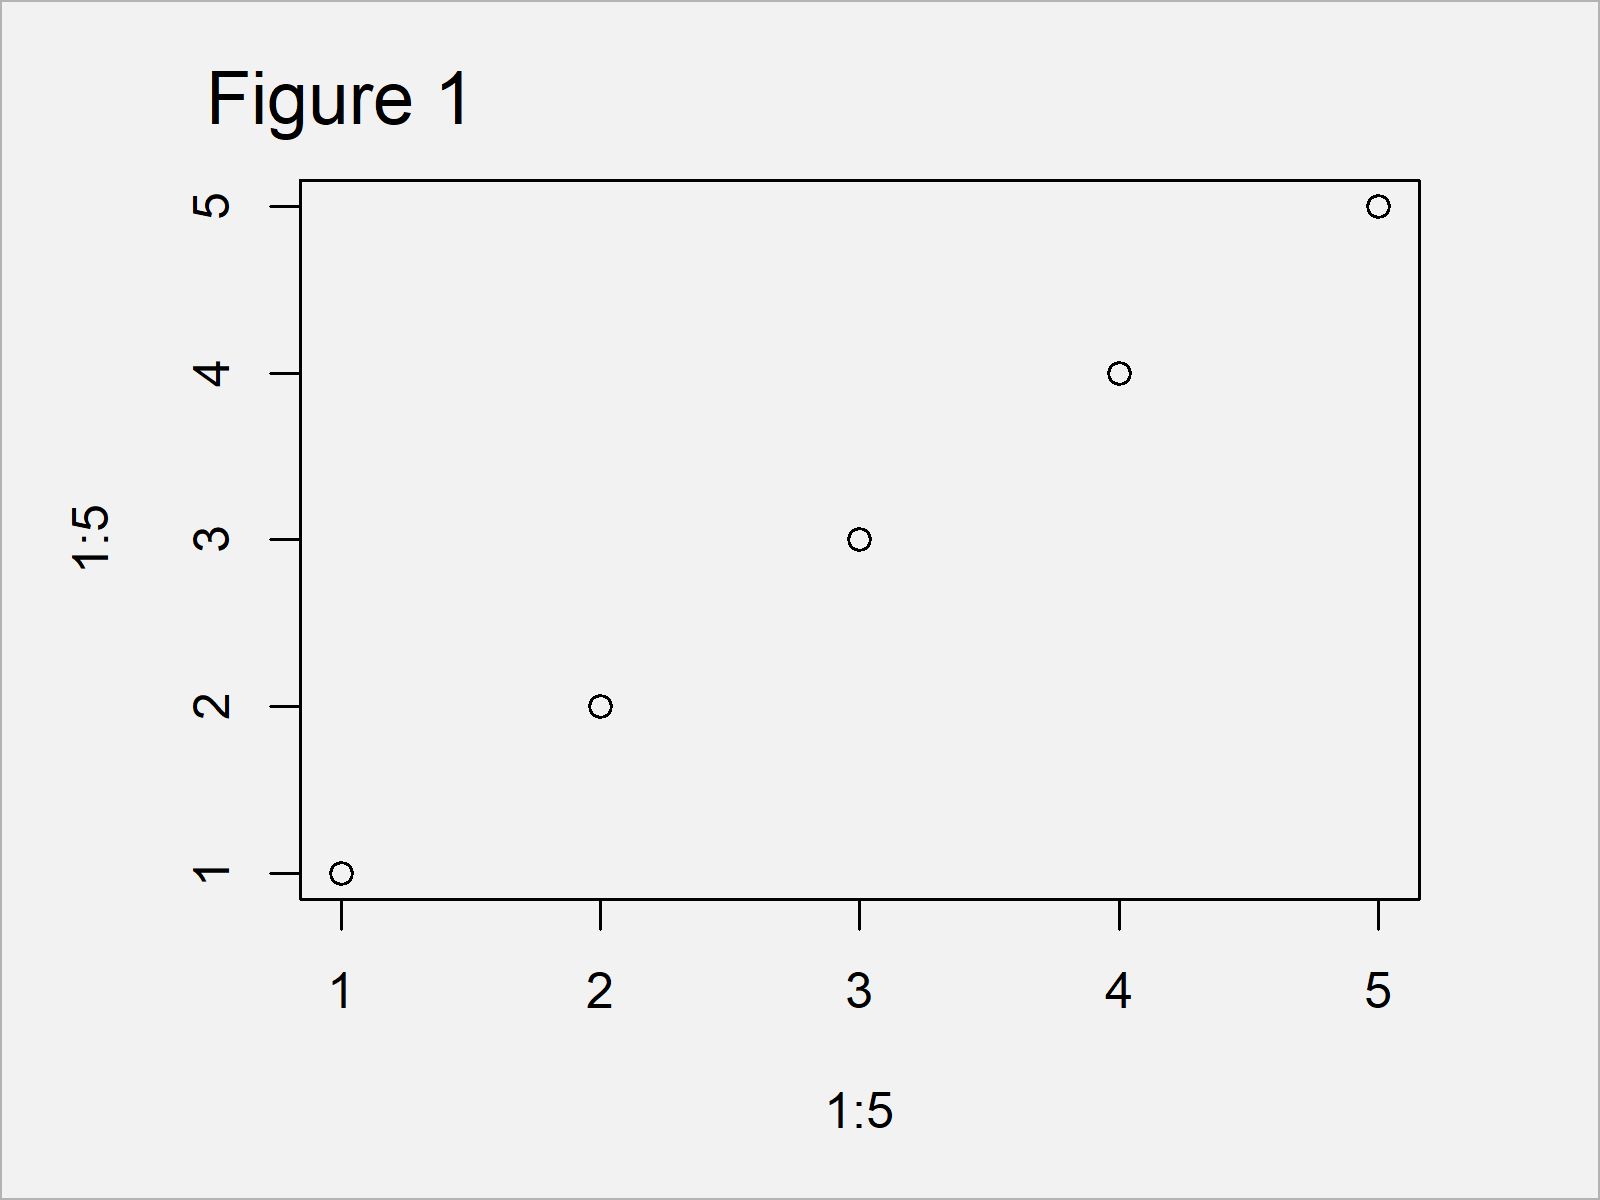 r graph figure 1 error xy coords x and y length differ r